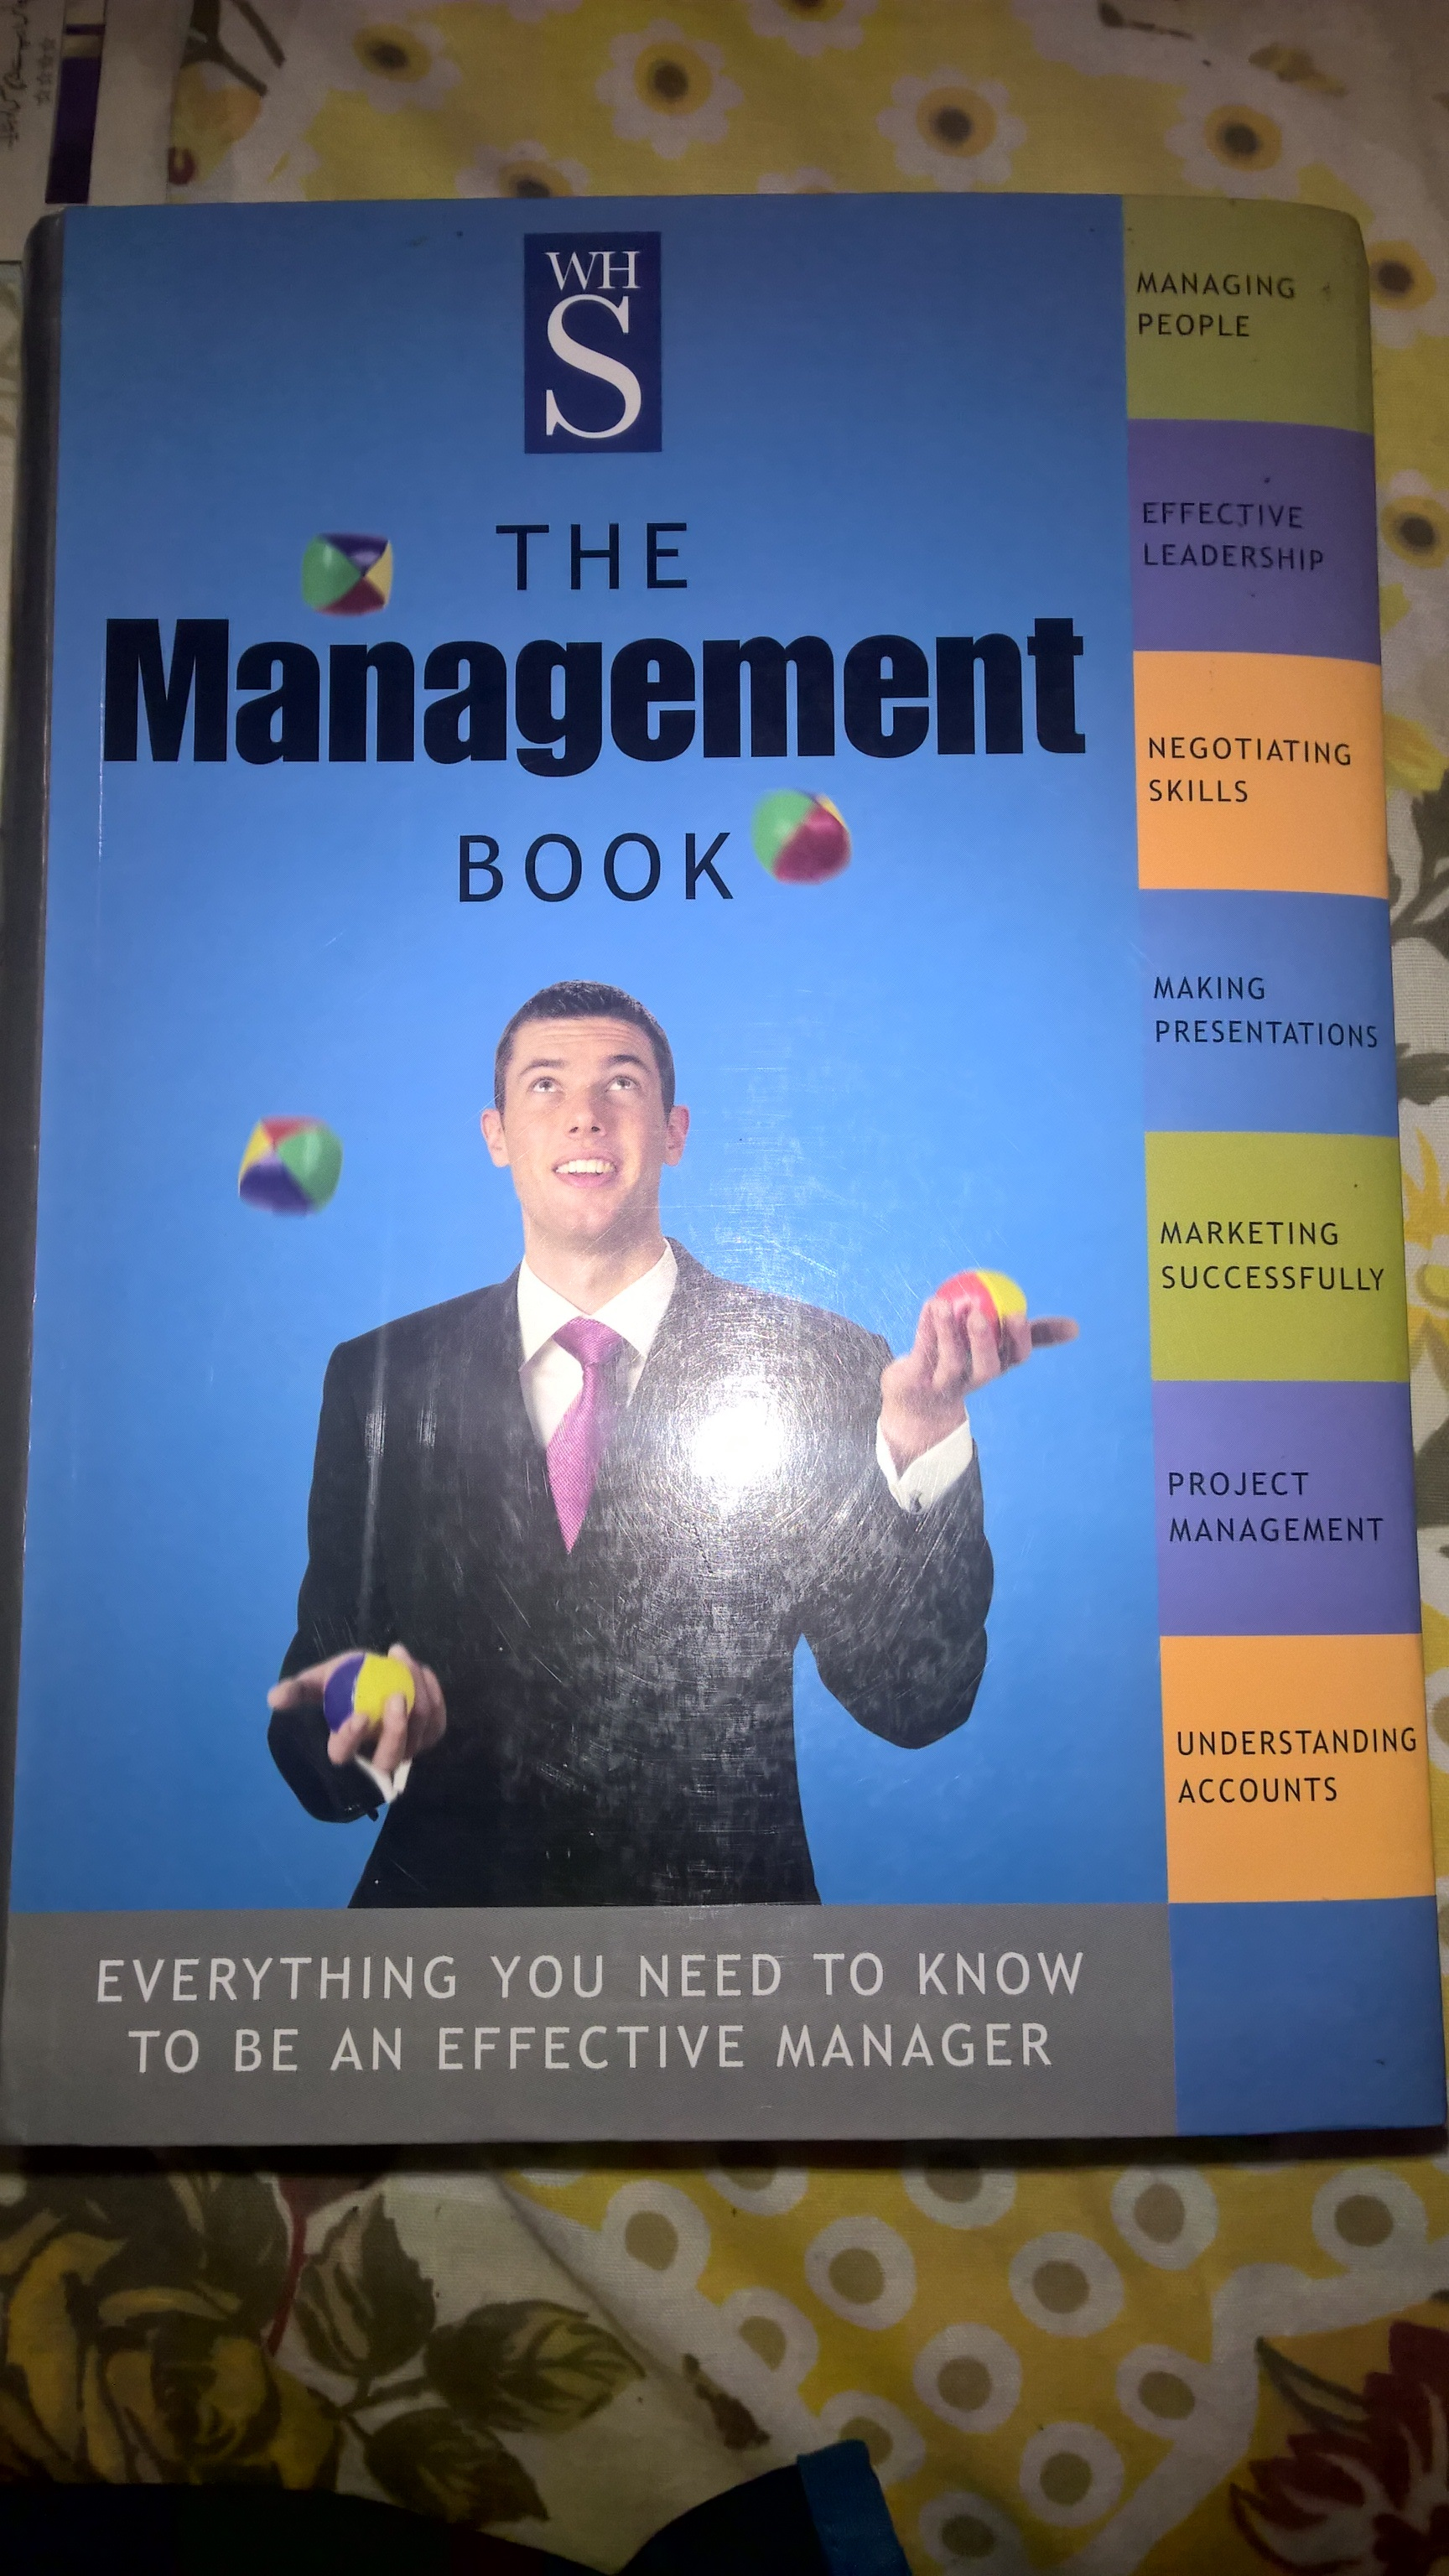 the management book: everything you need to know to be an effective manager